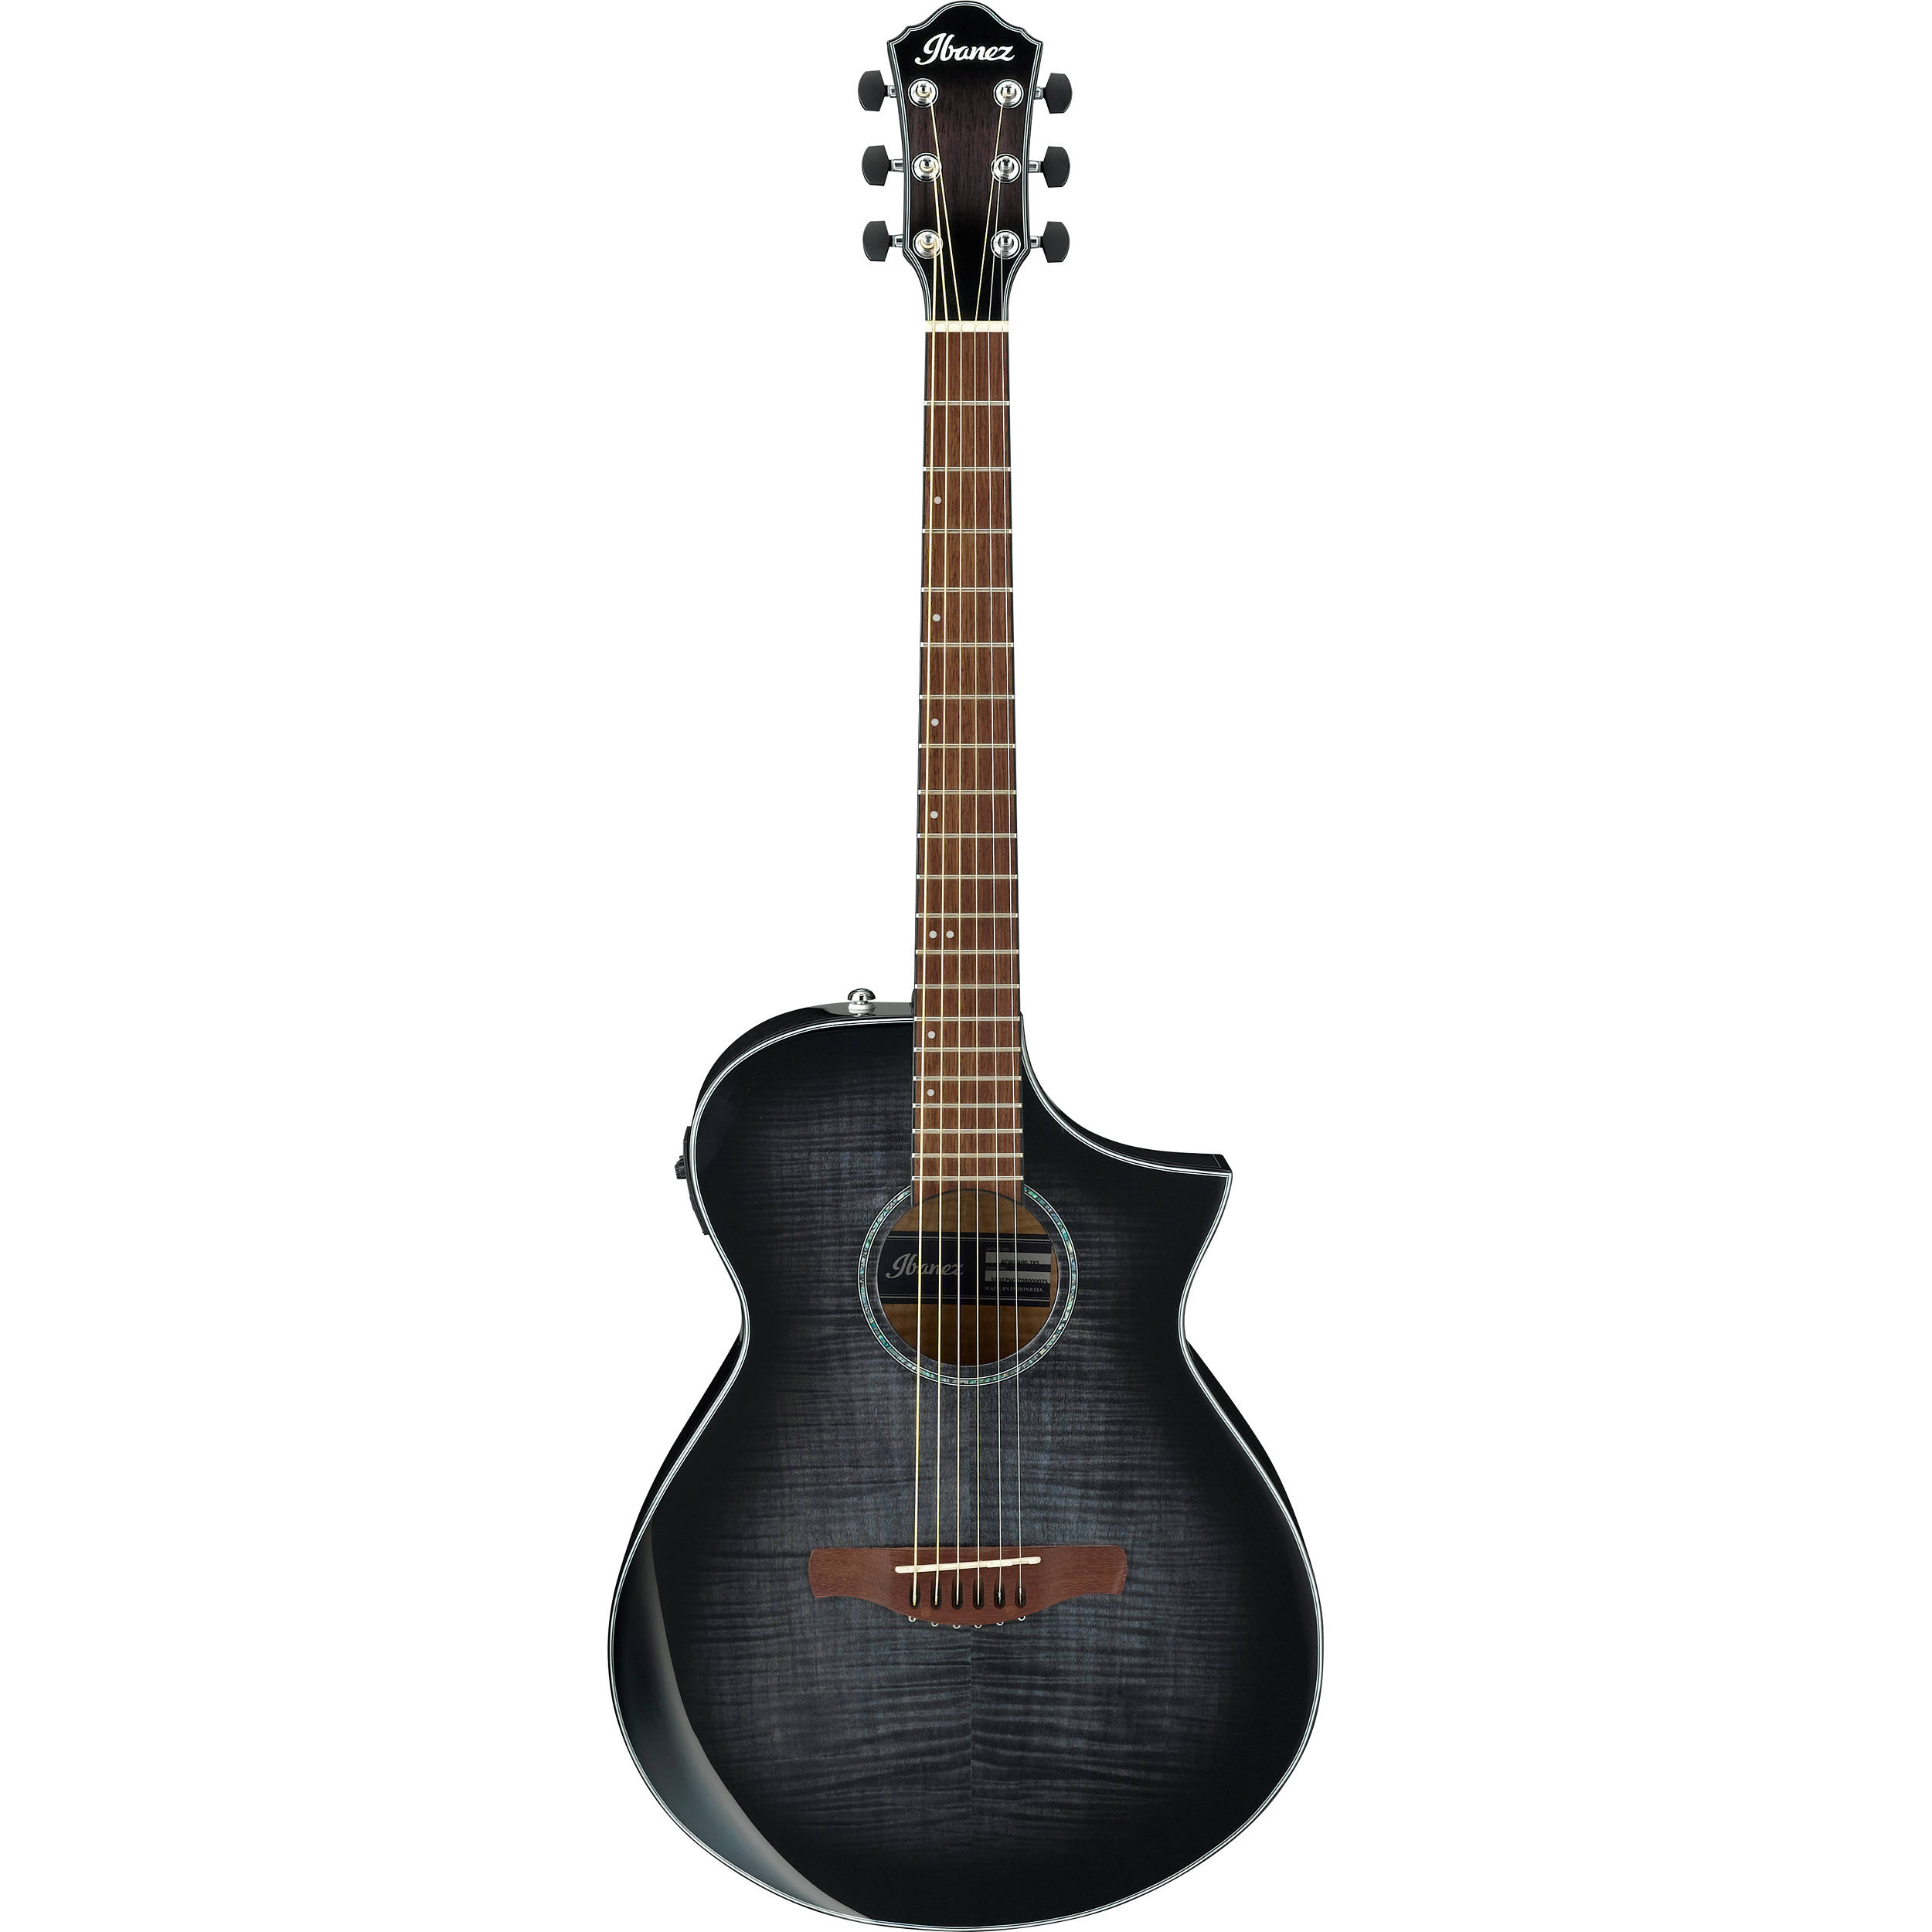 ibanez aewc400 aew series acoustic electric guitar aewc400tks. Black Bedroom Furniture Sets. Home Design Ideas